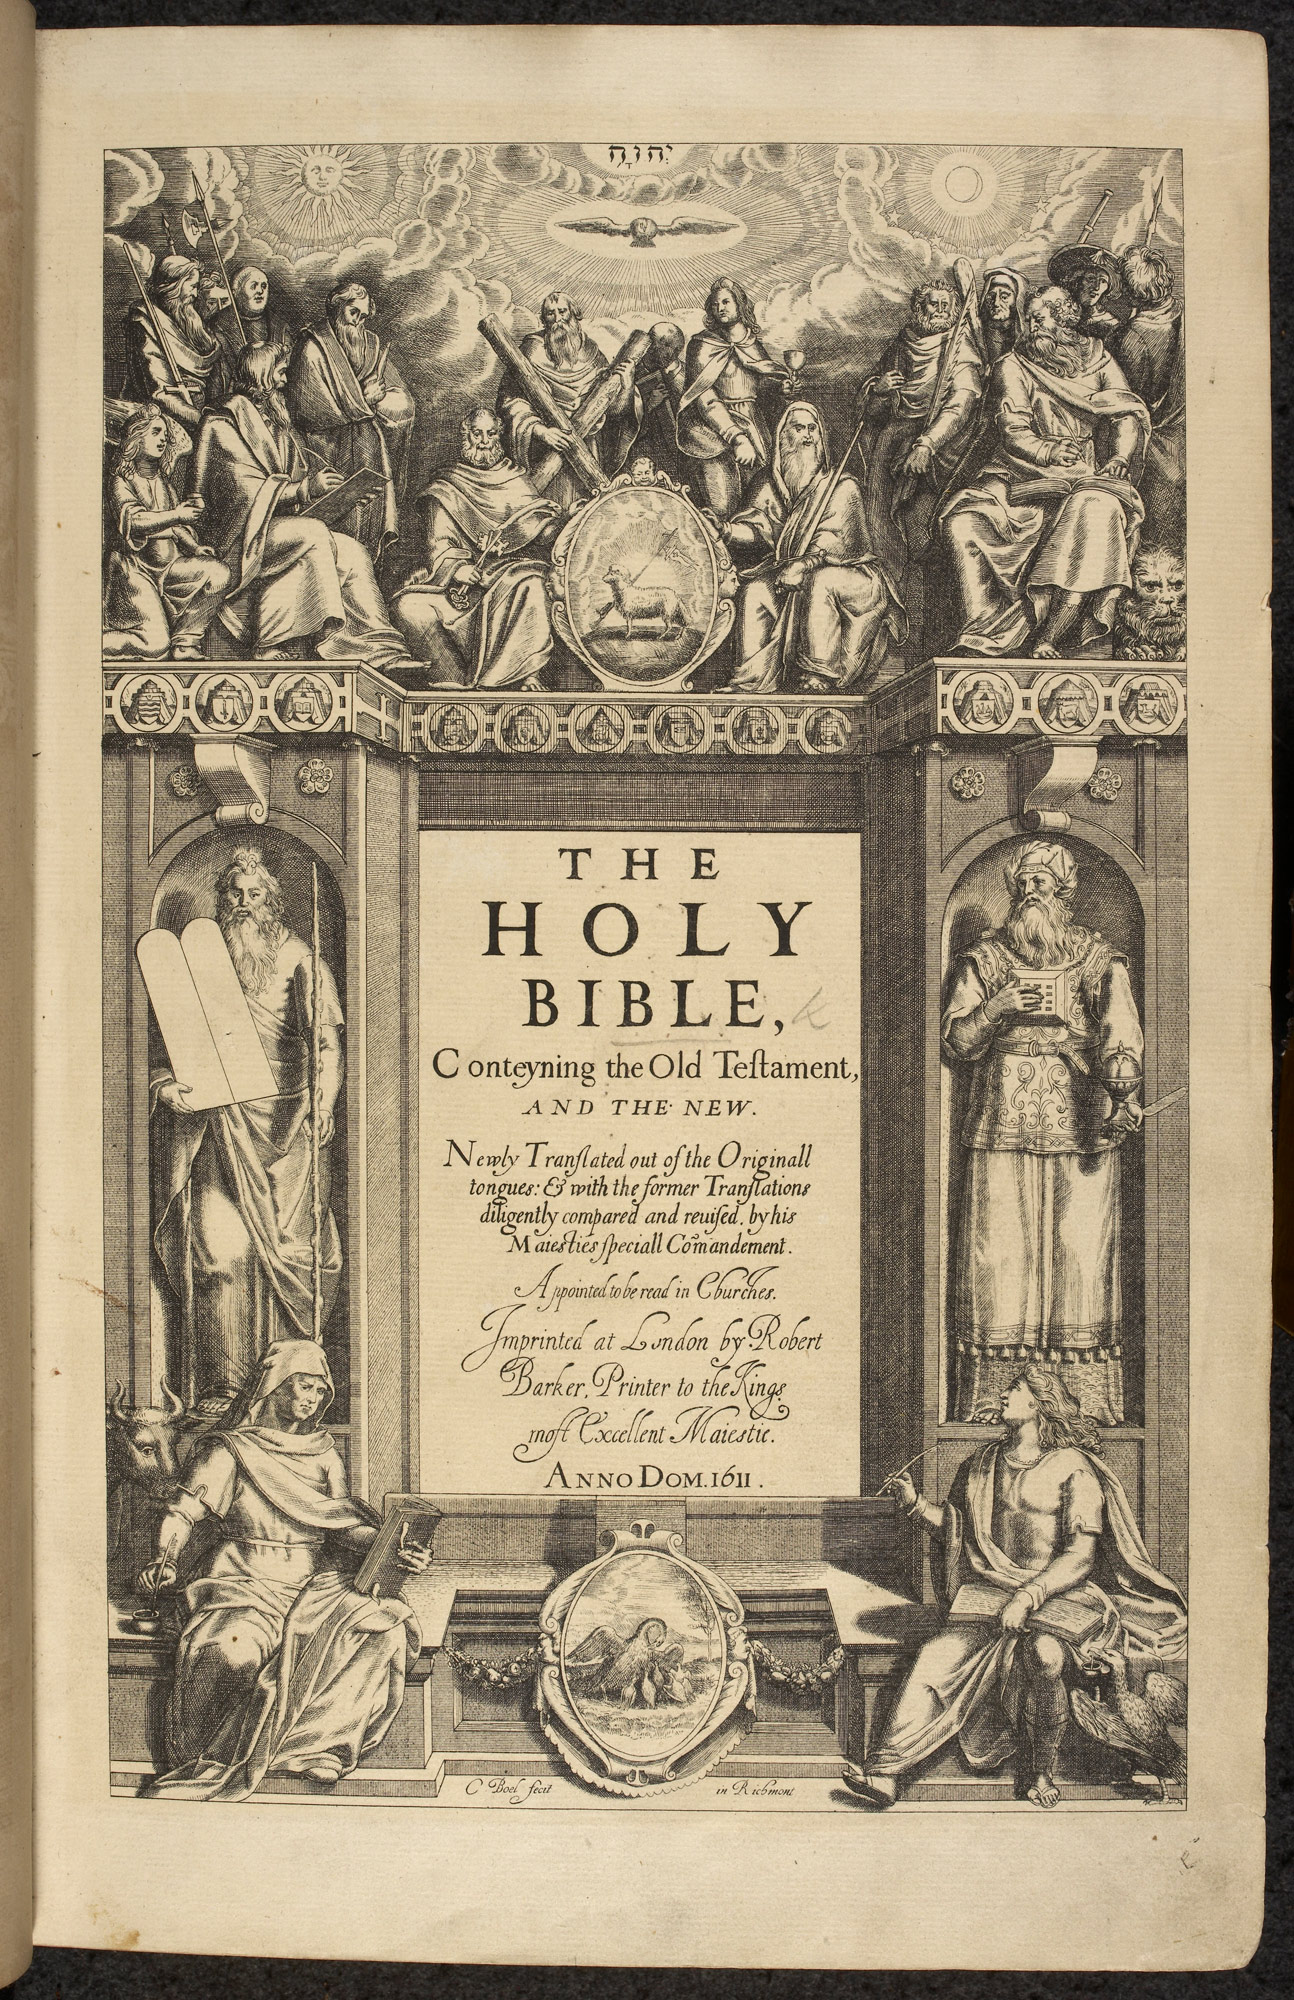 King James' bible - The British Library